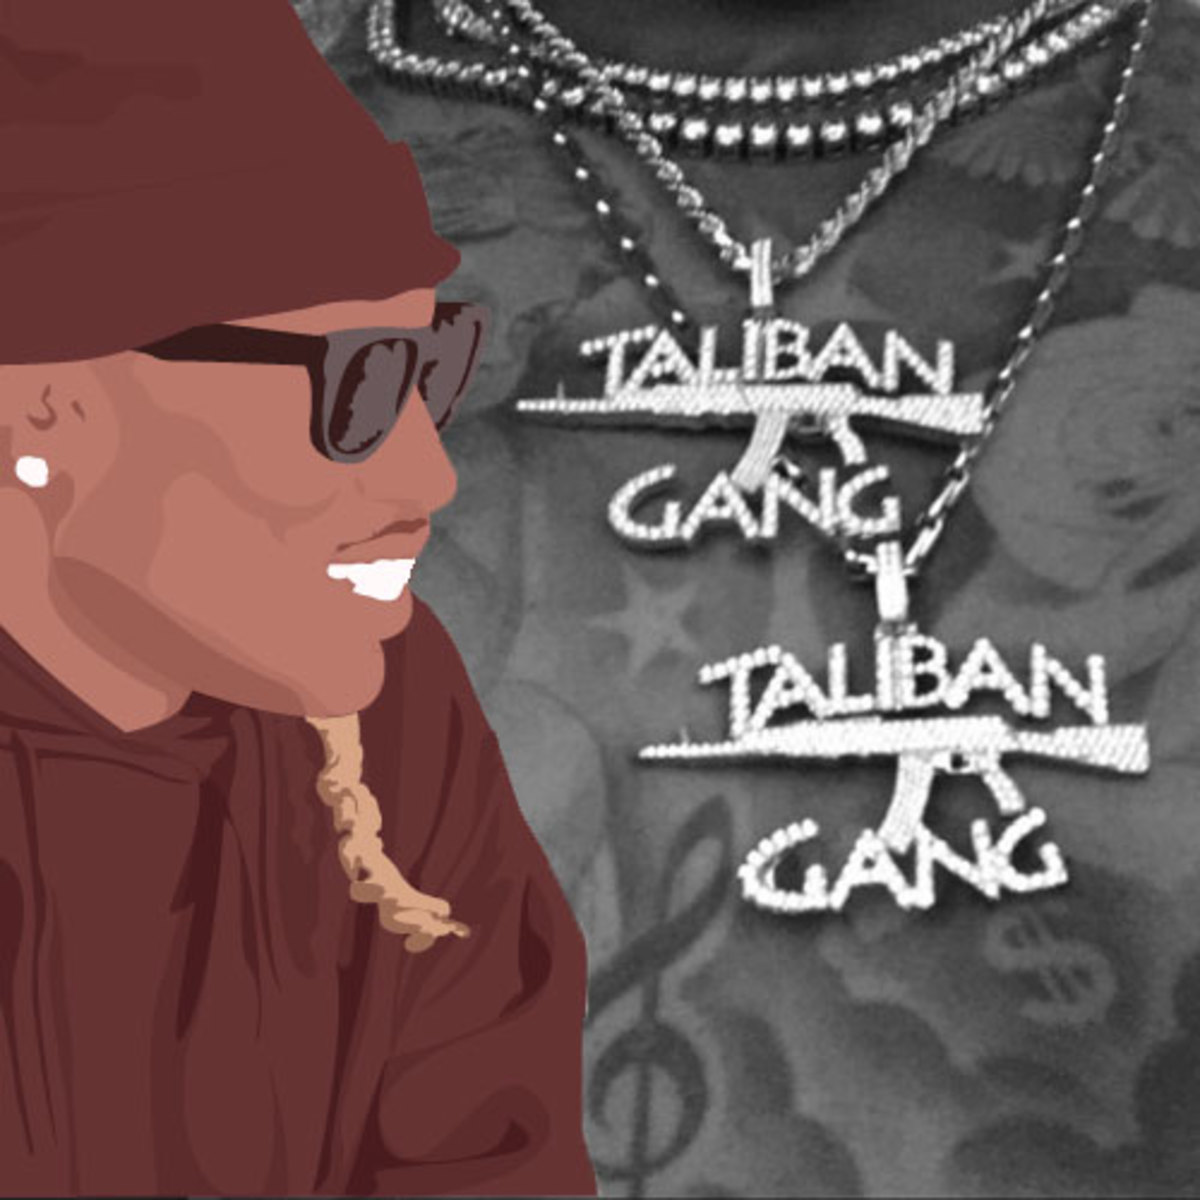 Why is Future Repping Taliban Gang & Who Are They? - DJBooth